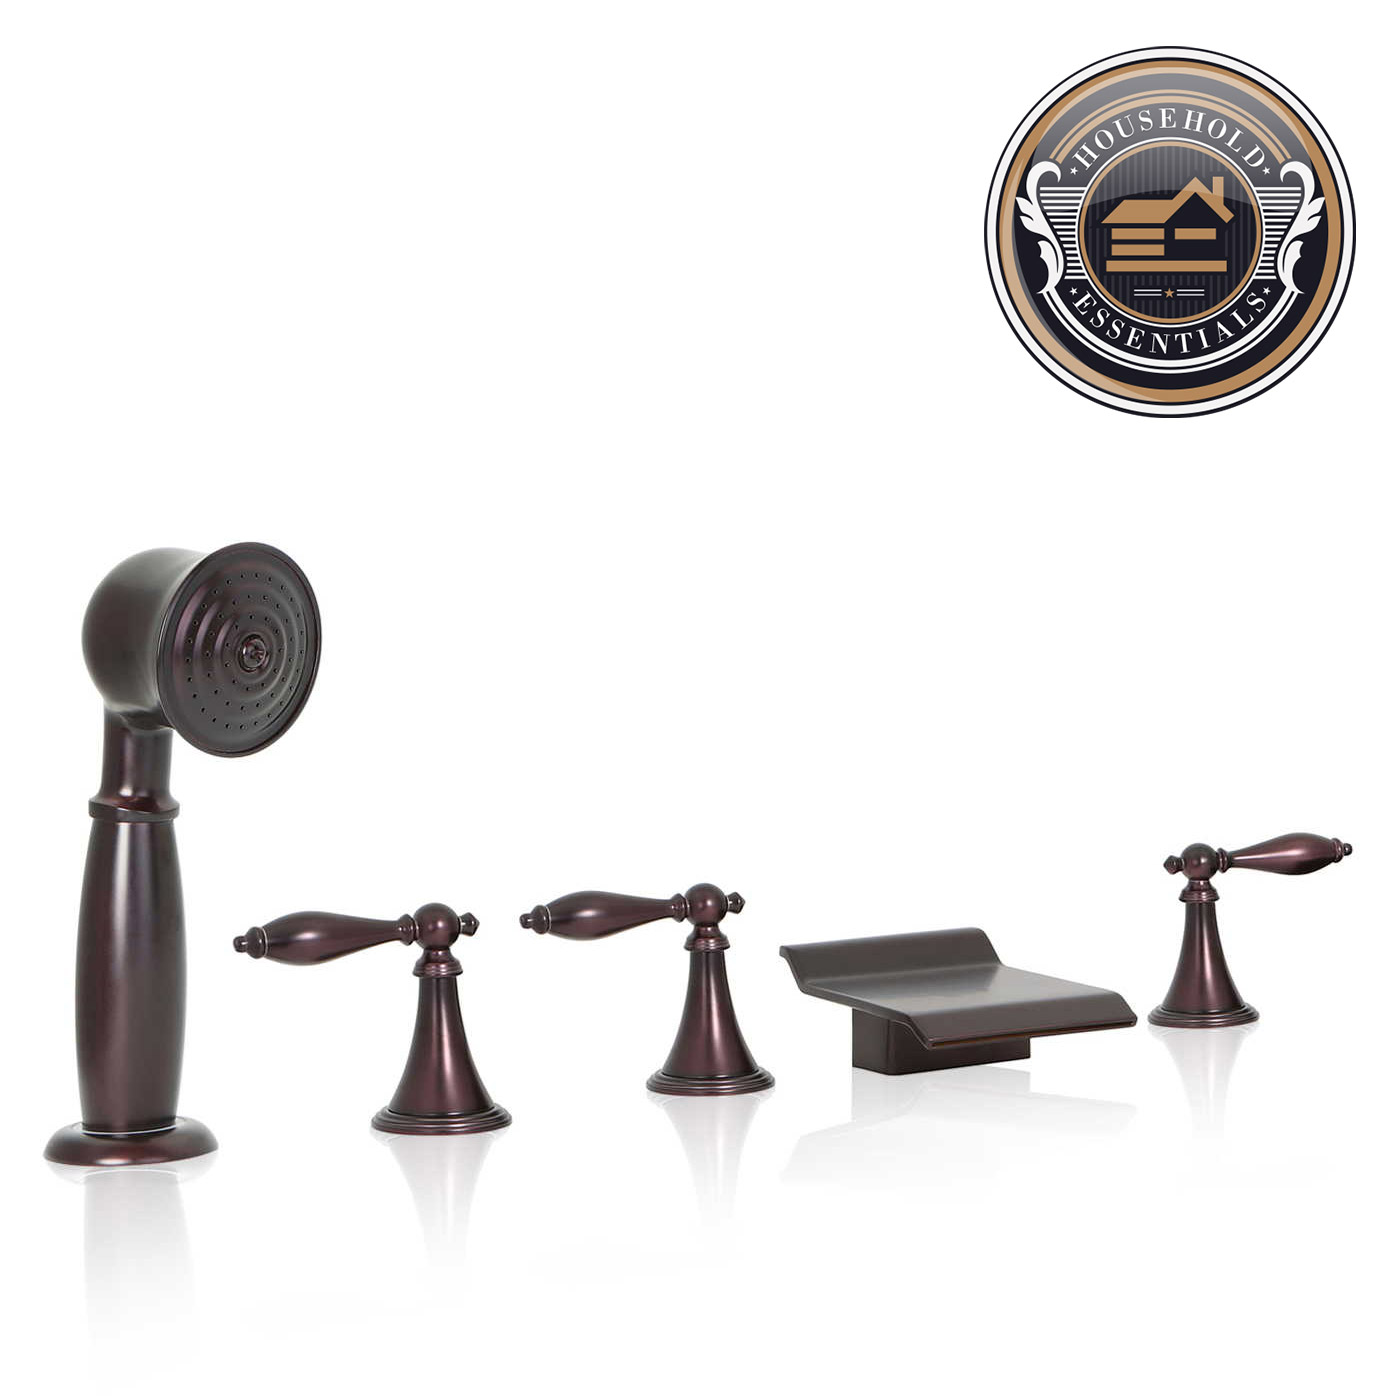 Oil Rubbed Bronze Waterfall Roman Tub Bathtub Faucet With Hand Shower Spray